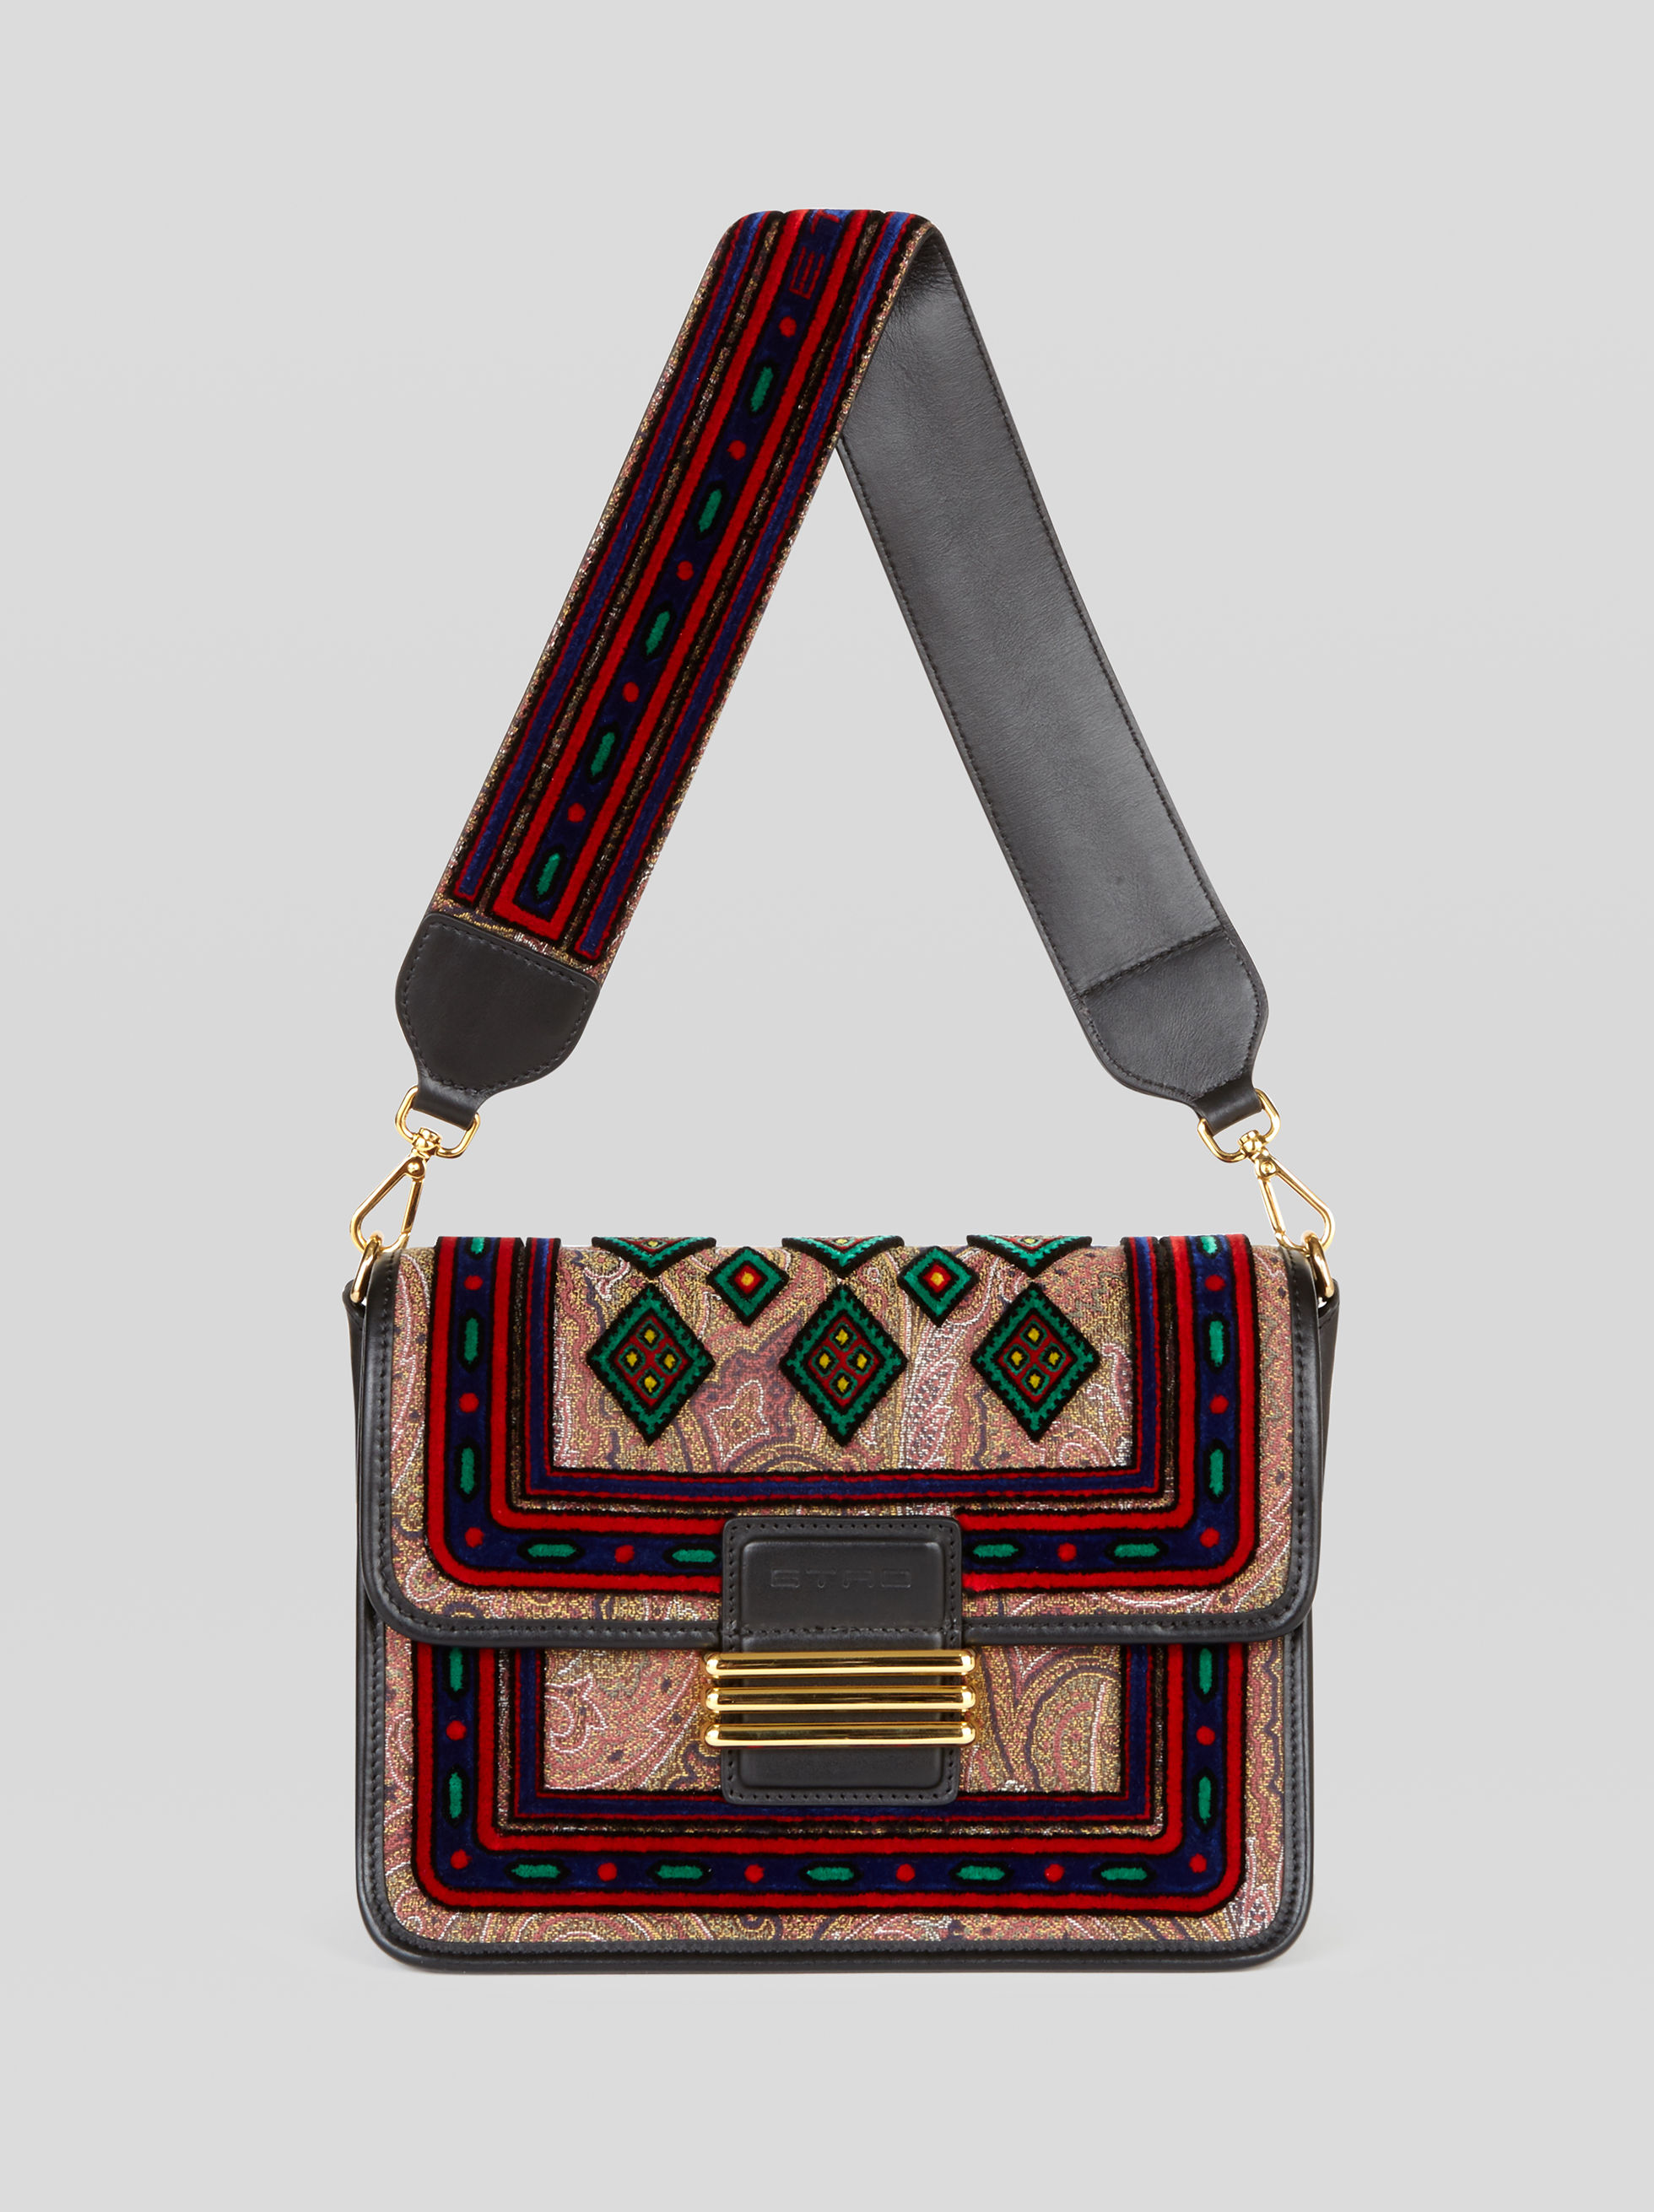 RAINBOW BAG WITH VELVET EMBROIDERY